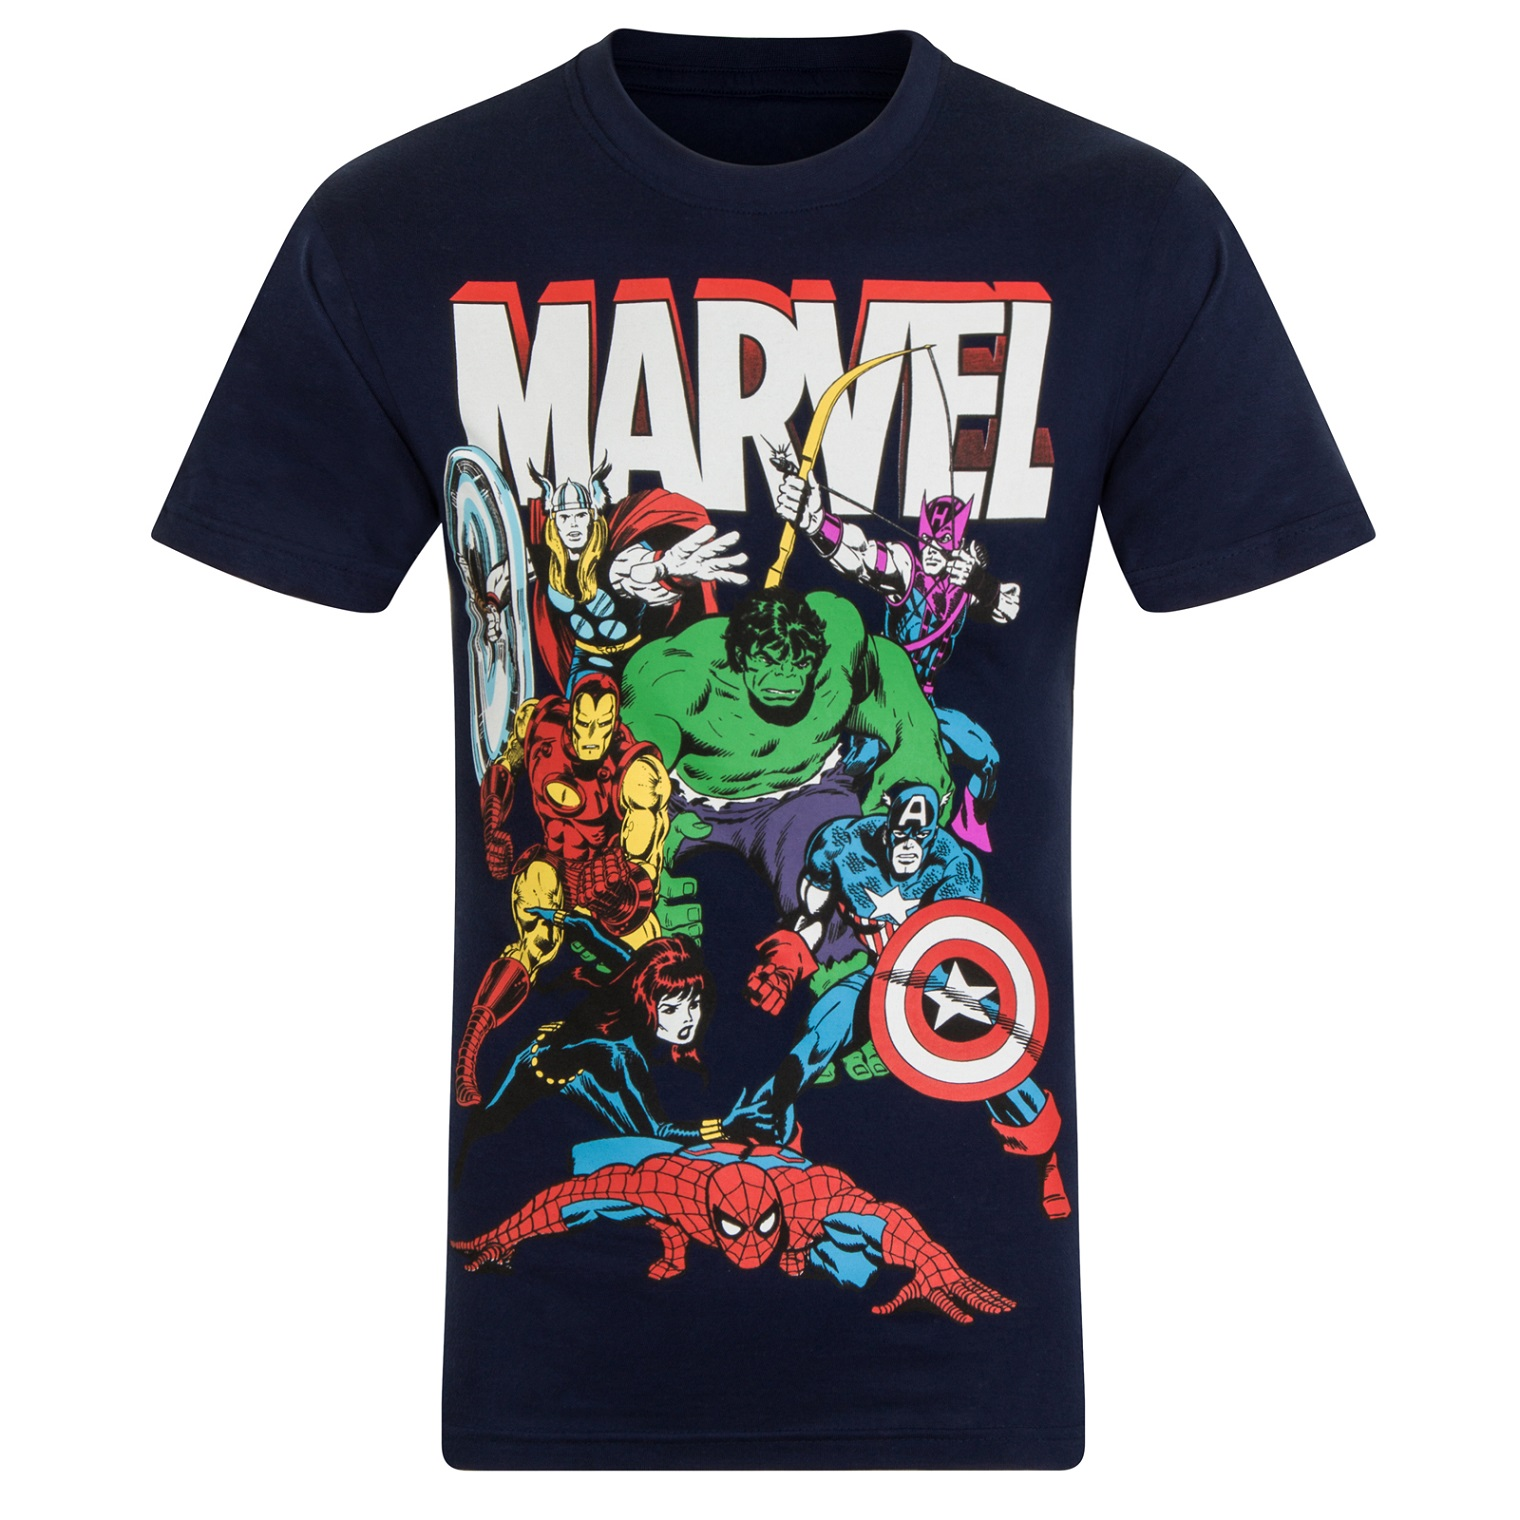 Marvel Kids Clothing & Accessories from CafePress are professionally printed and made of the best materials in a wide range of colors and sizes.